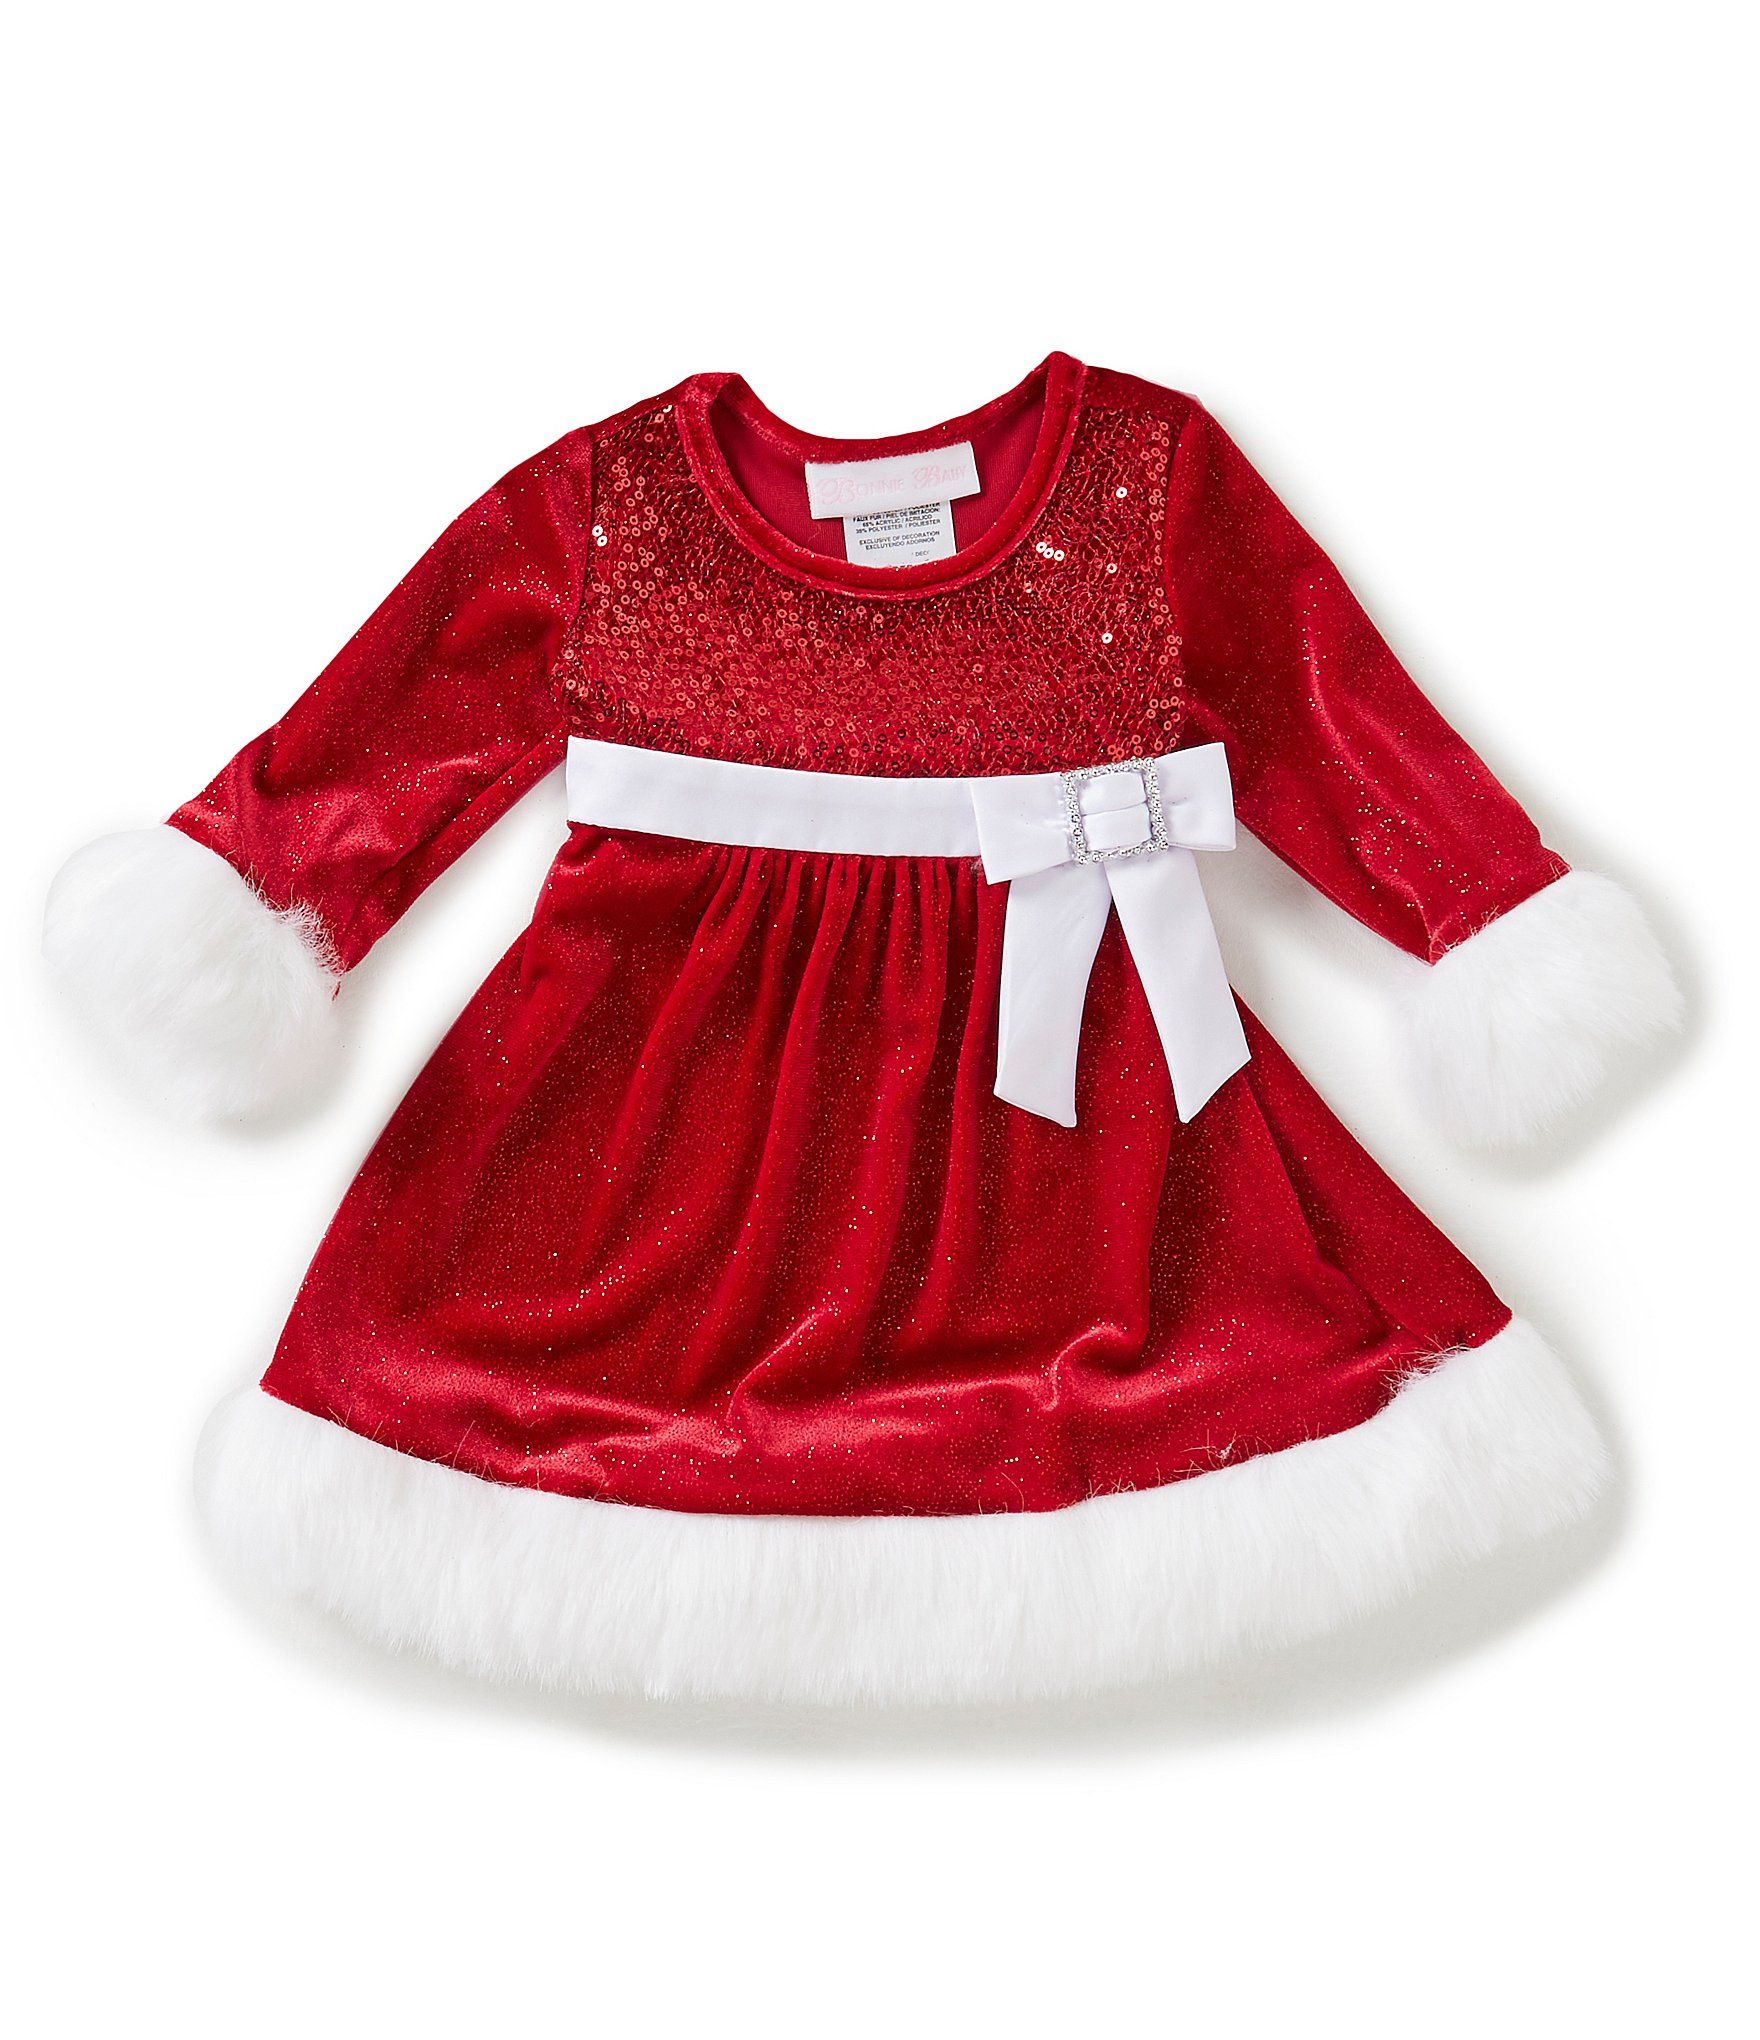 Shop for Bonnie Baby Baby Girls Newborn 24 Months Santa Sparkle